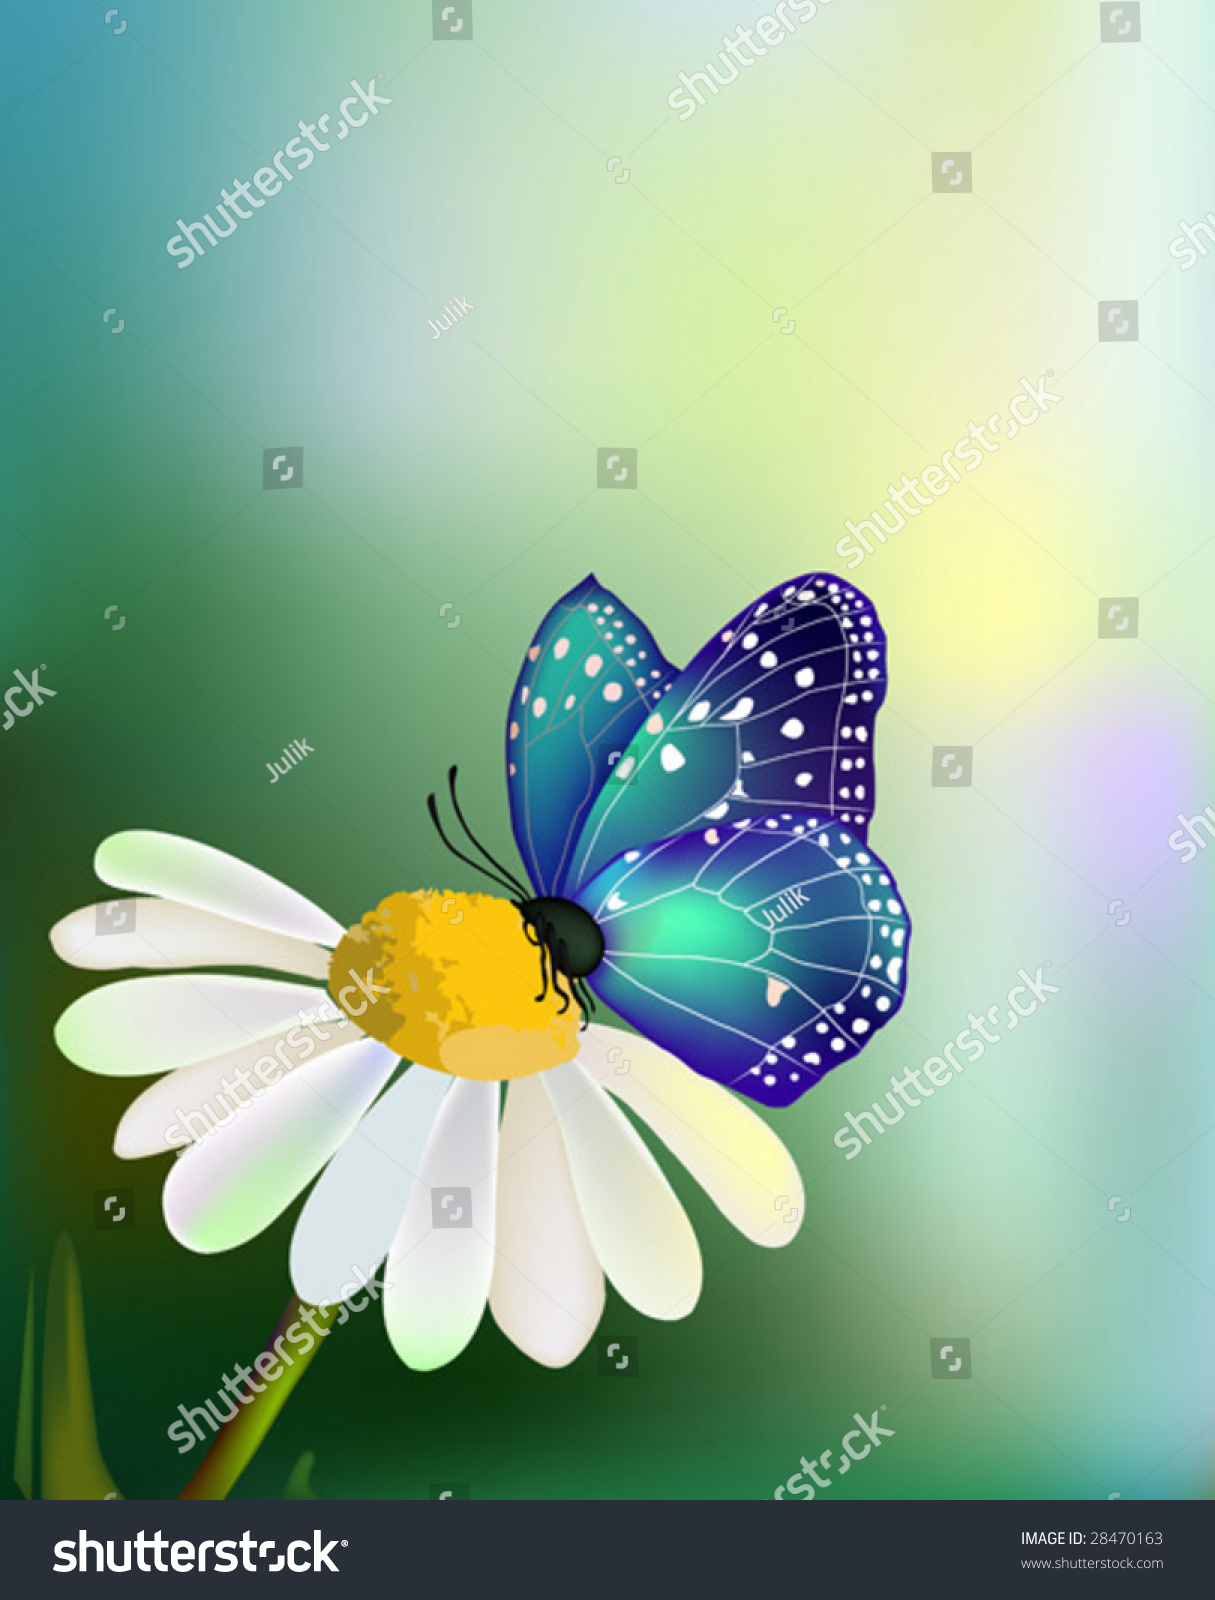 Vector blue butterfly on daisyflower sky stock vector royalty free vector blue butterfly on the daisy flower with the sky background izmirmasajfo